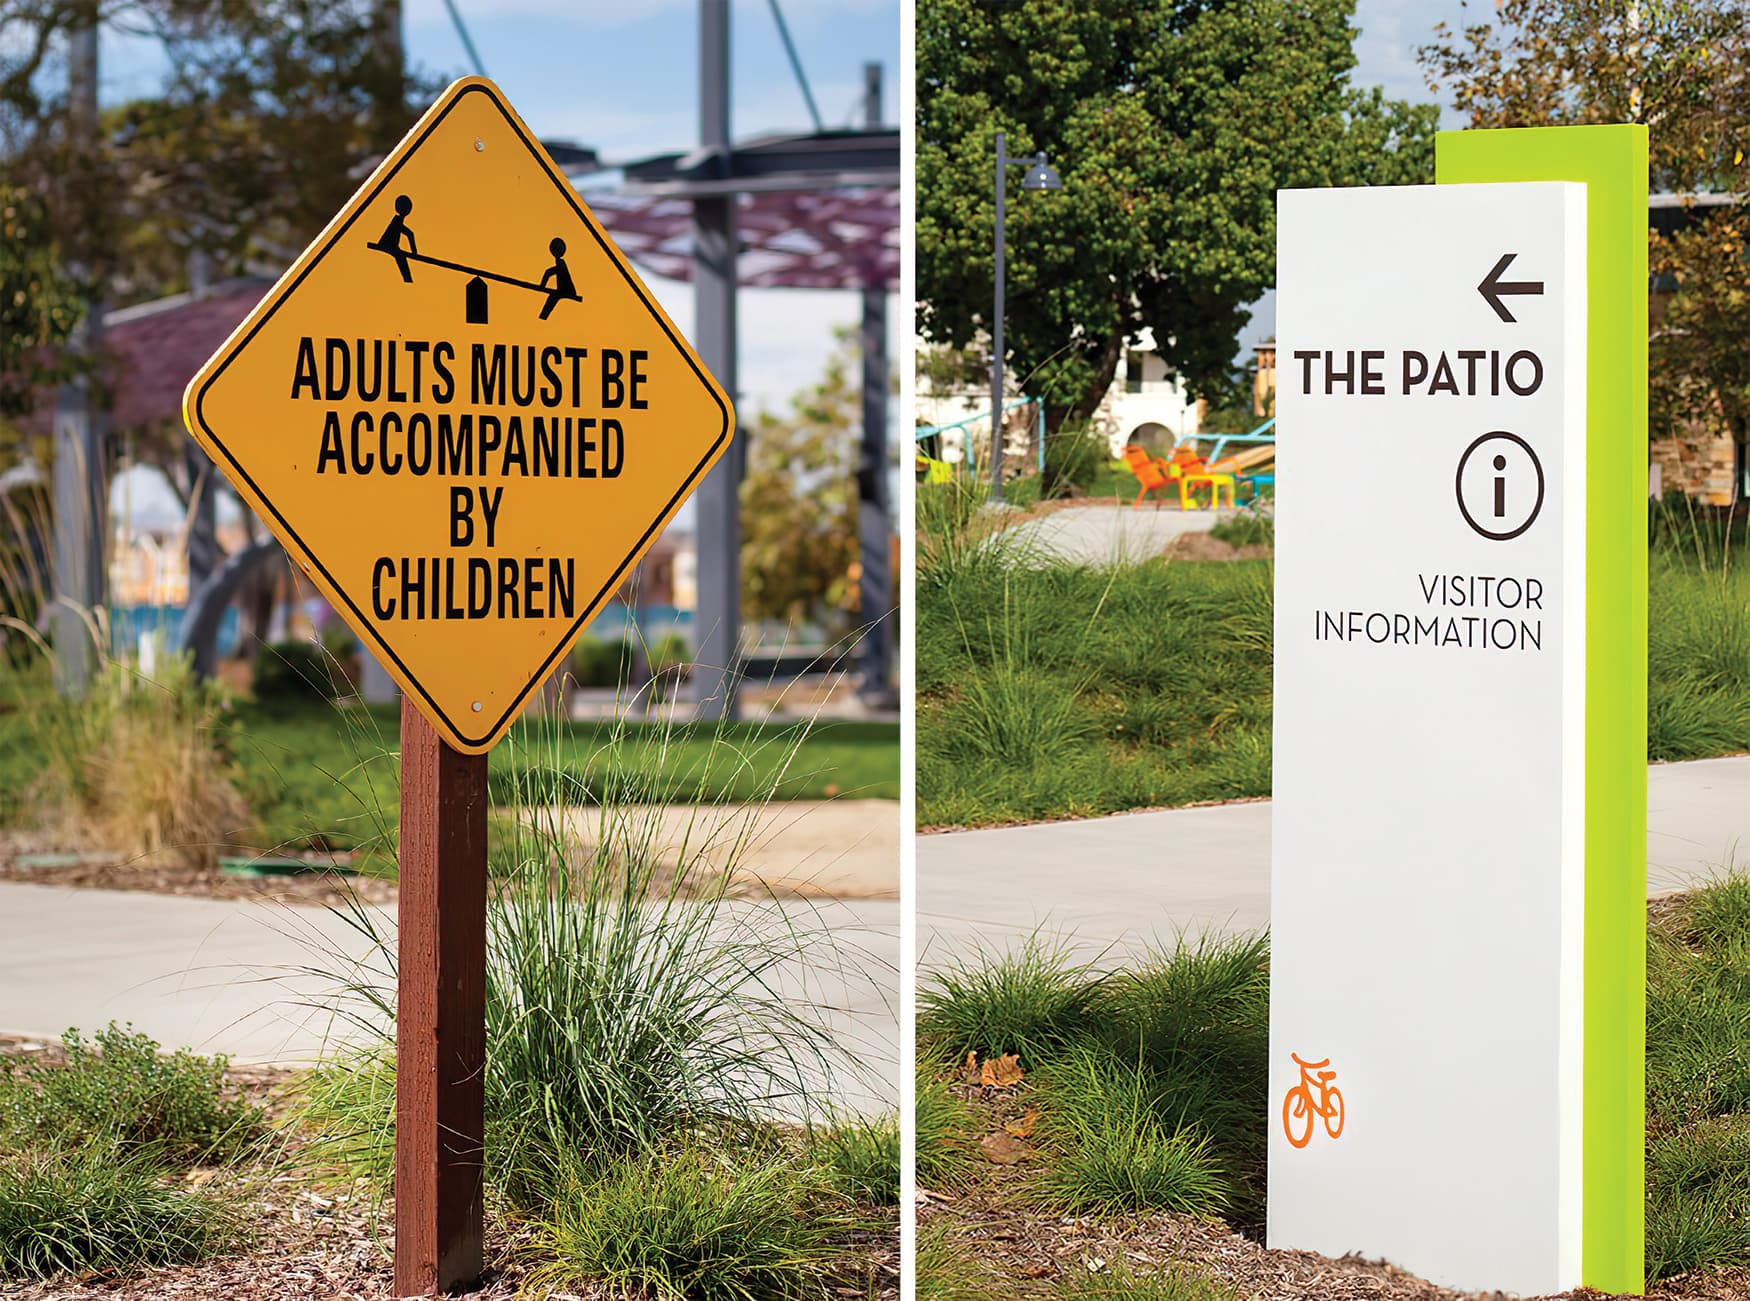 RSM Design worked with Great Park Neighborhoods to create a wayfinding and graphics system for Beacon Park, a residential neighborhood in Irvine, California. Pedestrian Wayfinding Directional Signage.